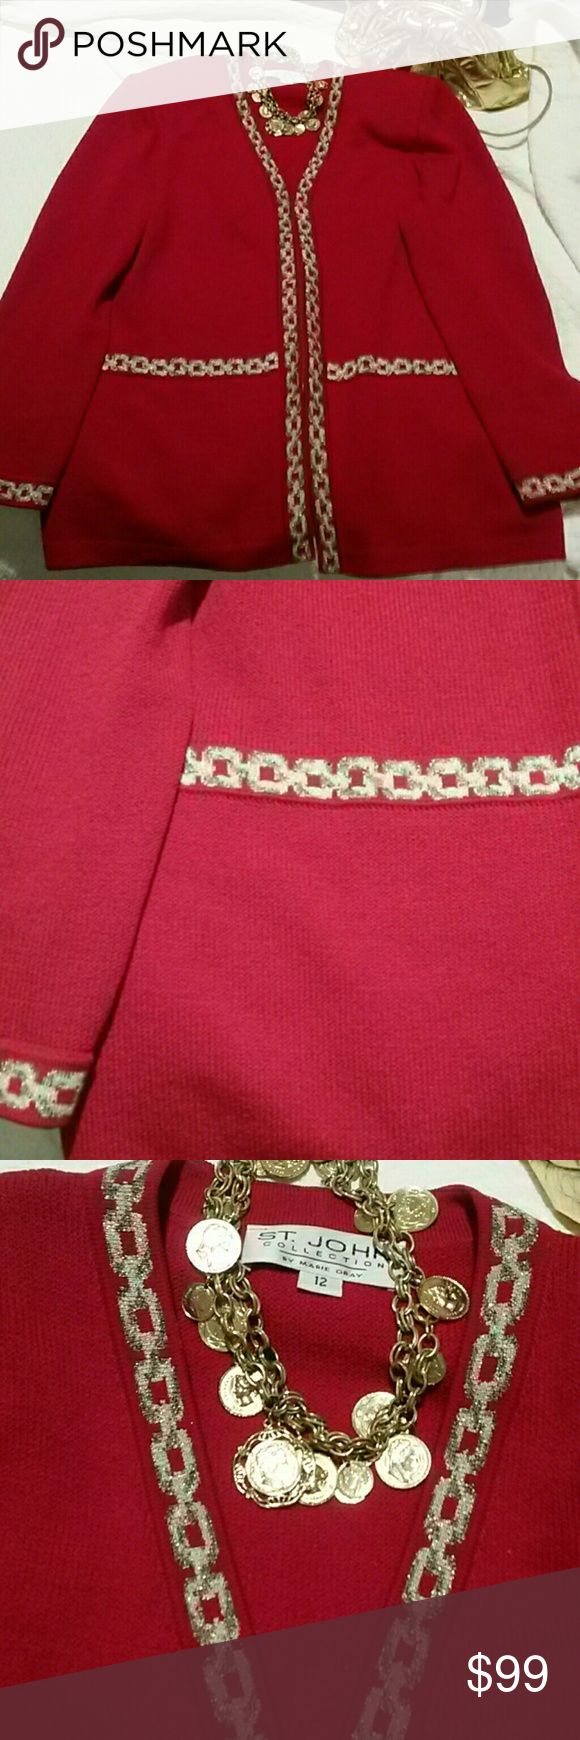 Authentic St. John knit womans clothing Red Jacket Beautiful Vintage St. John womans Jacket gorgeous with gold rope like simmering trim. Sz. 12 awesome vintage condition zips up in front.  Sleeves 25 in. back 16 1/2, armpit 22 in. , length 29 in. If you have any questions please contact me. 1 issue the zipper charm is missing,  there for you can be creative and put a charm of your choice on this St. John Knit Sweater. Where it with jeans or dress it up or down!  Thanks Happy Poshing! St…